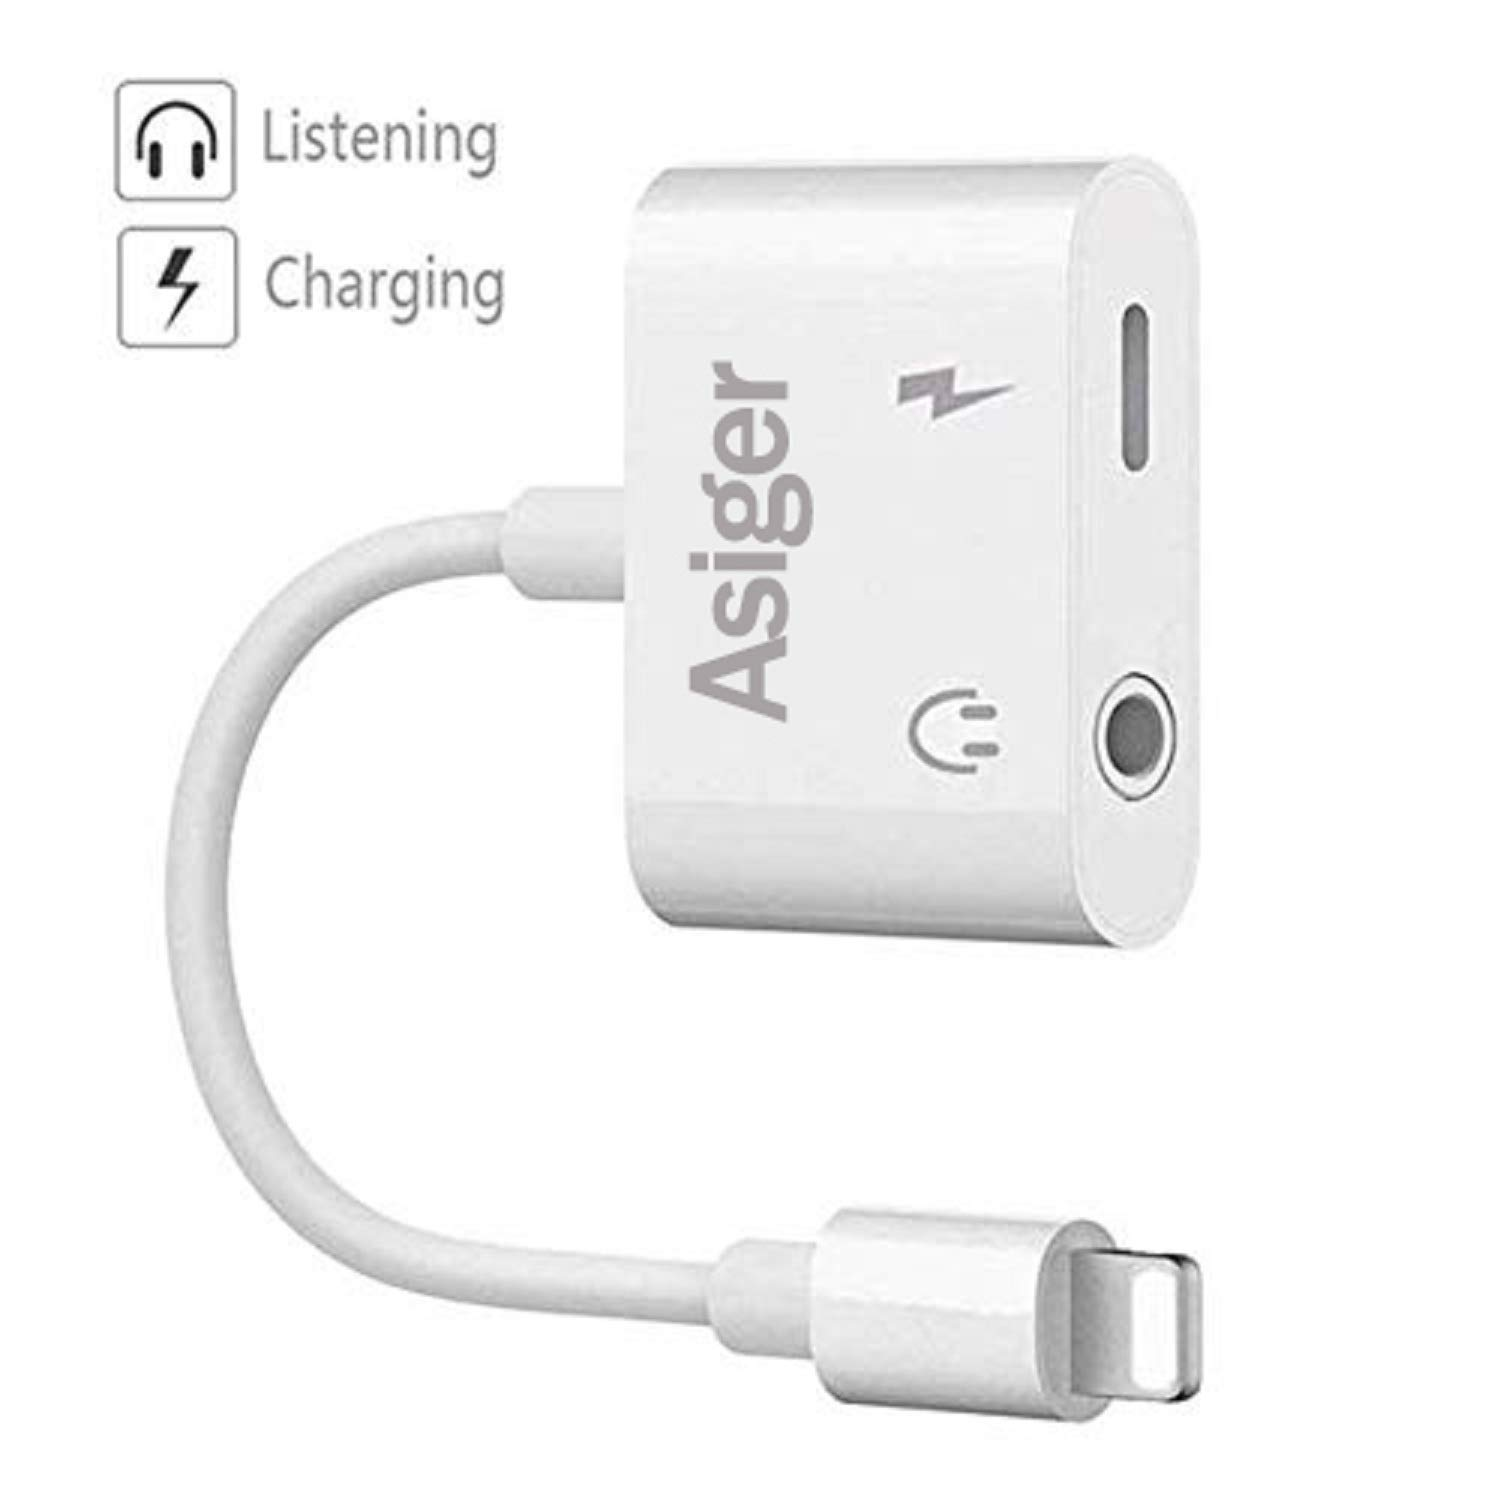 Amazon.com: Headphone Adapter Charger Adapter 3.5mm Square Jack Dongle Adapter Earphone Aux Audio & Charge: Sports & Outdoors